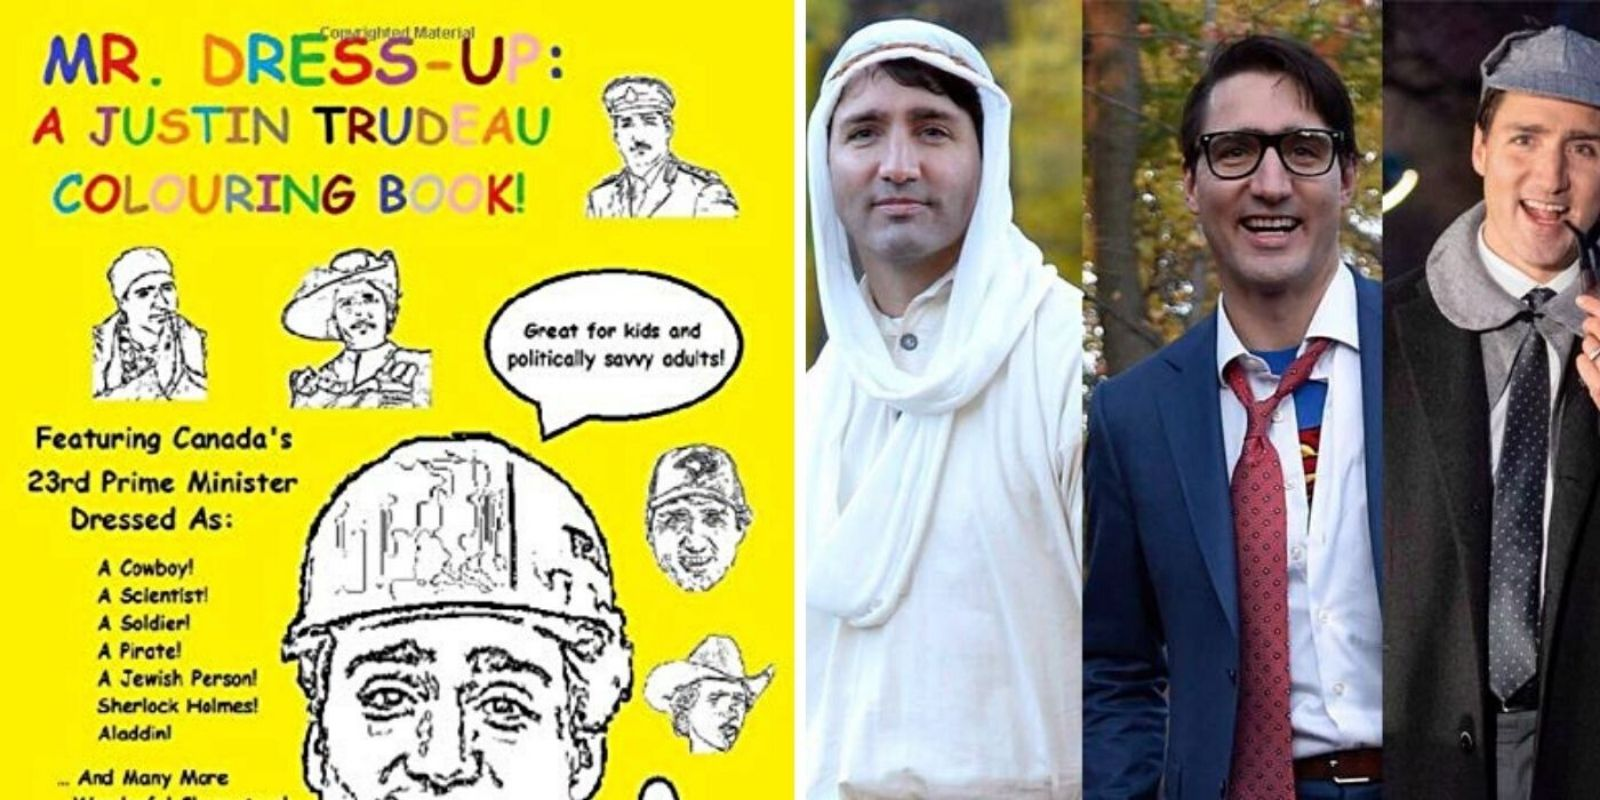 """Justin Trudeau """"Mr. Dress-up"""" colouring book for sale on Amazon"""